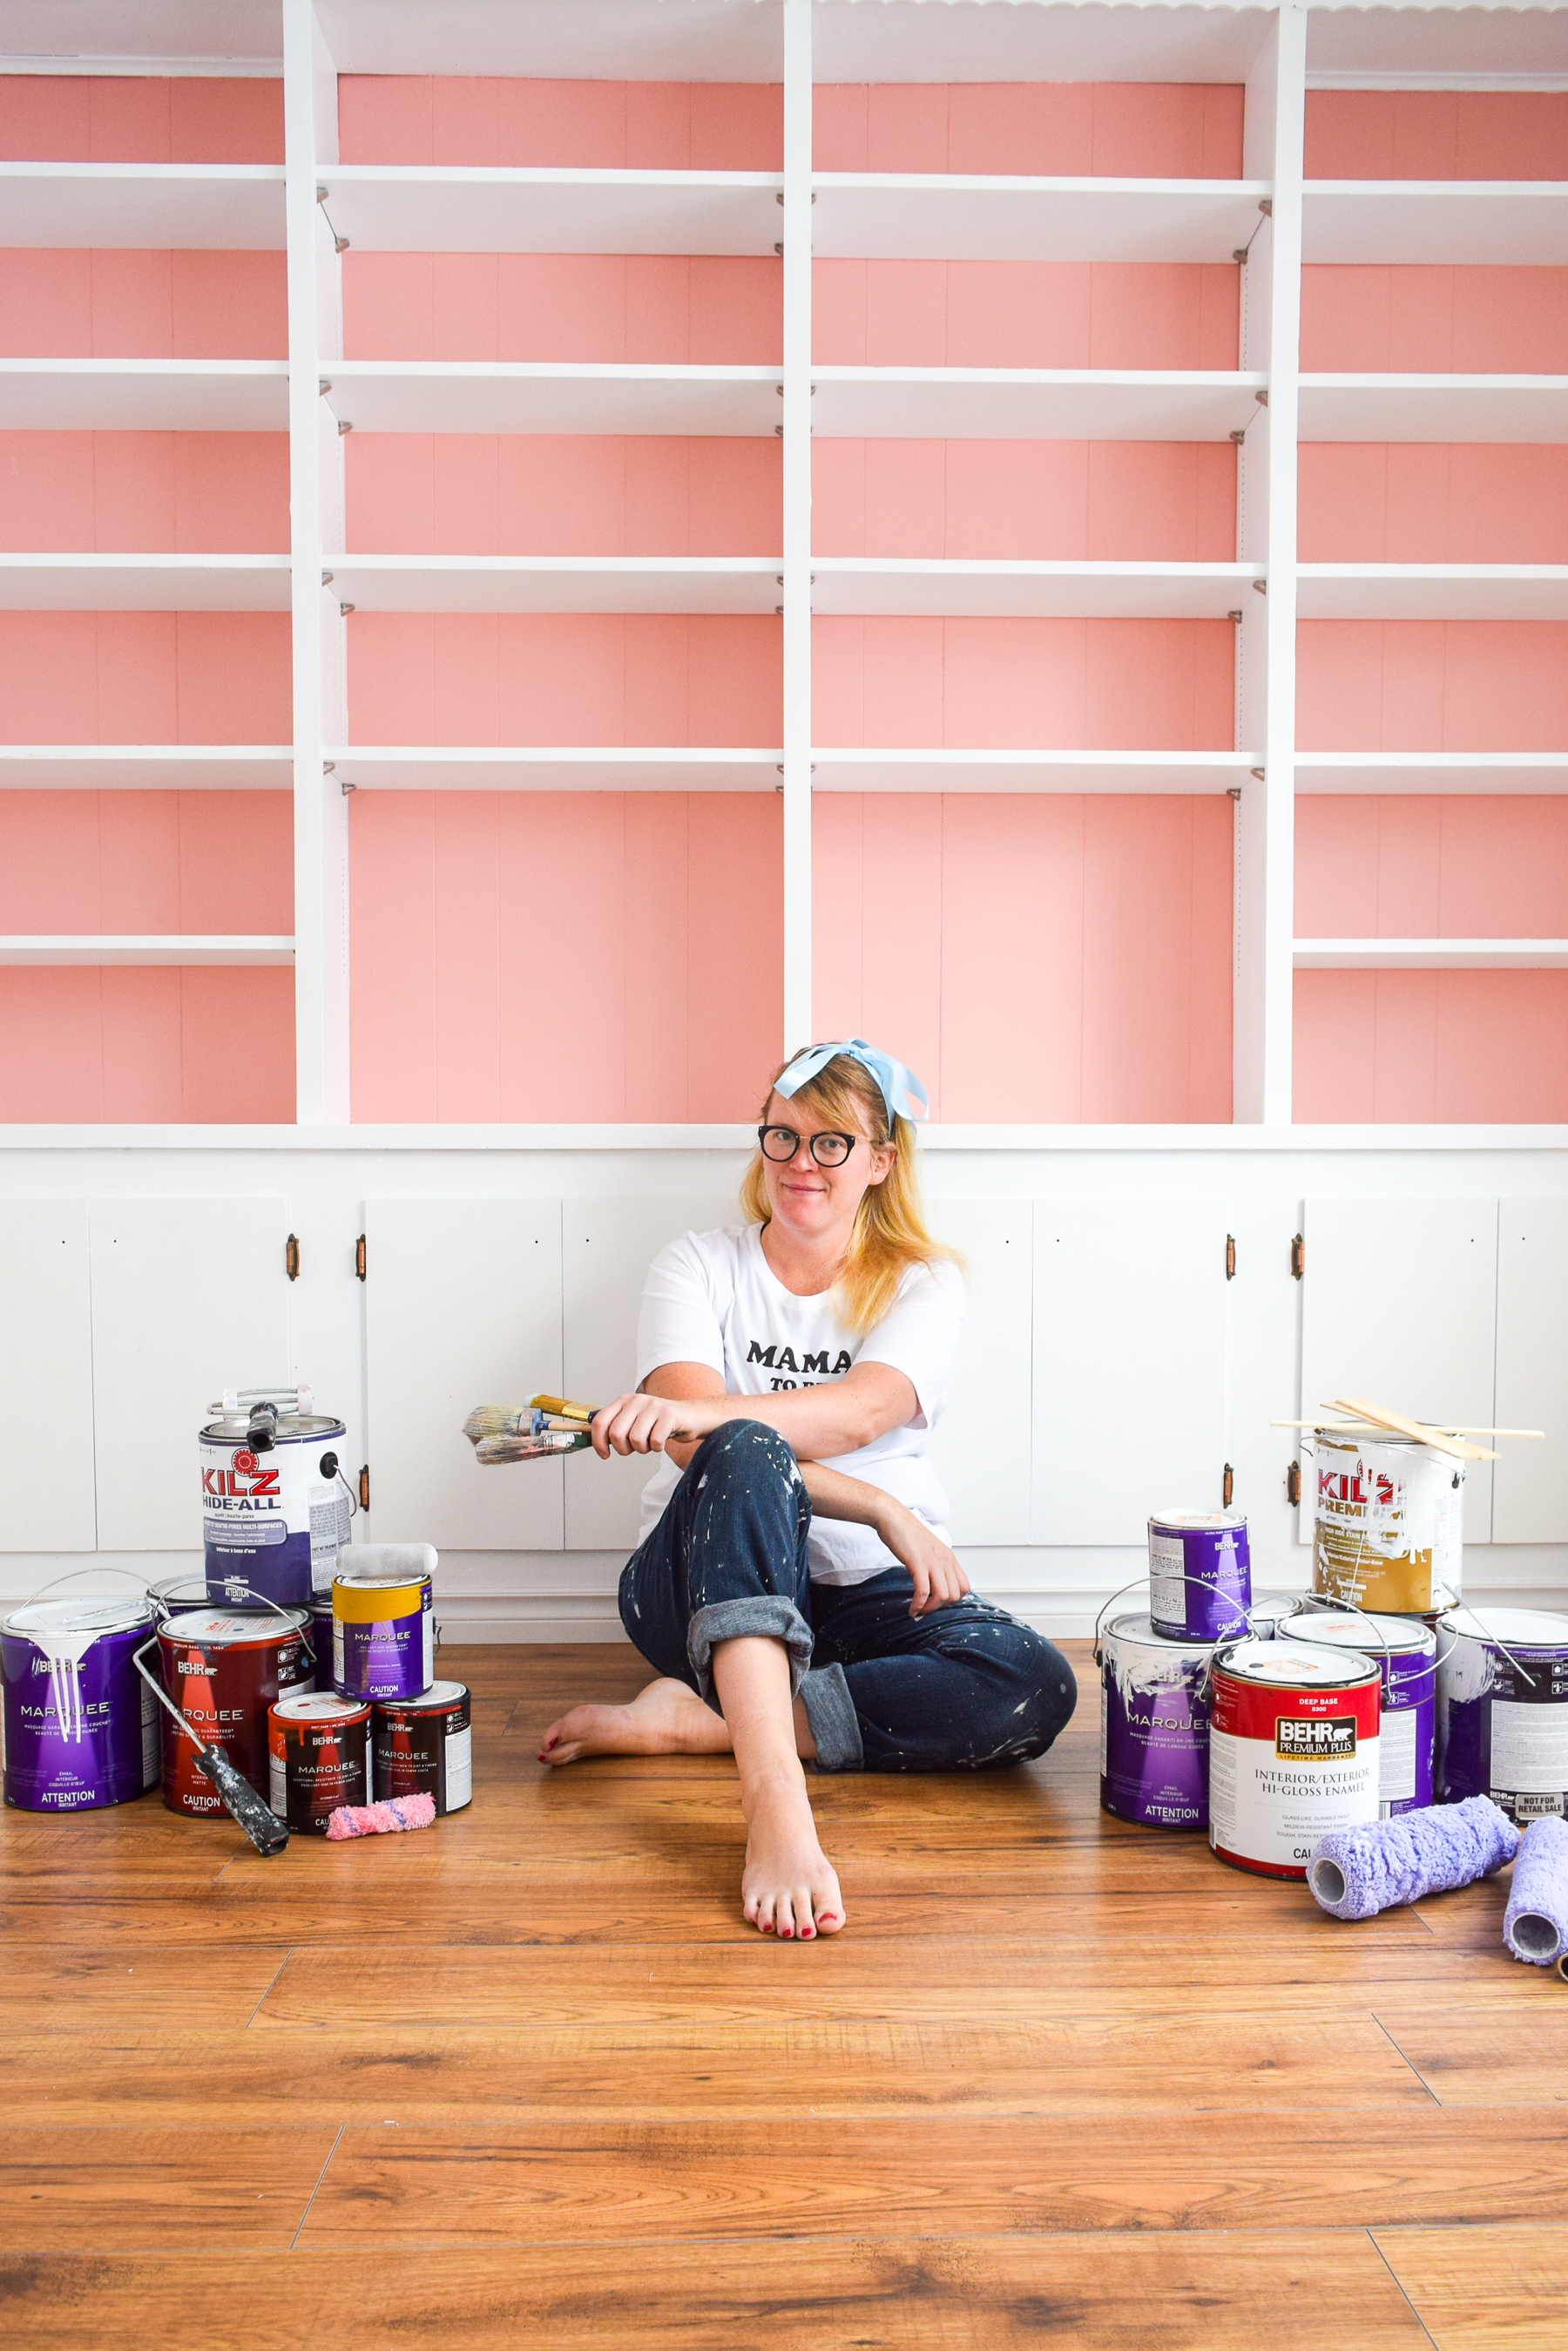 Home Painting Tips from an Expert: the complete guide to paint selection, tools, tips and tricks for painting anything in your home.